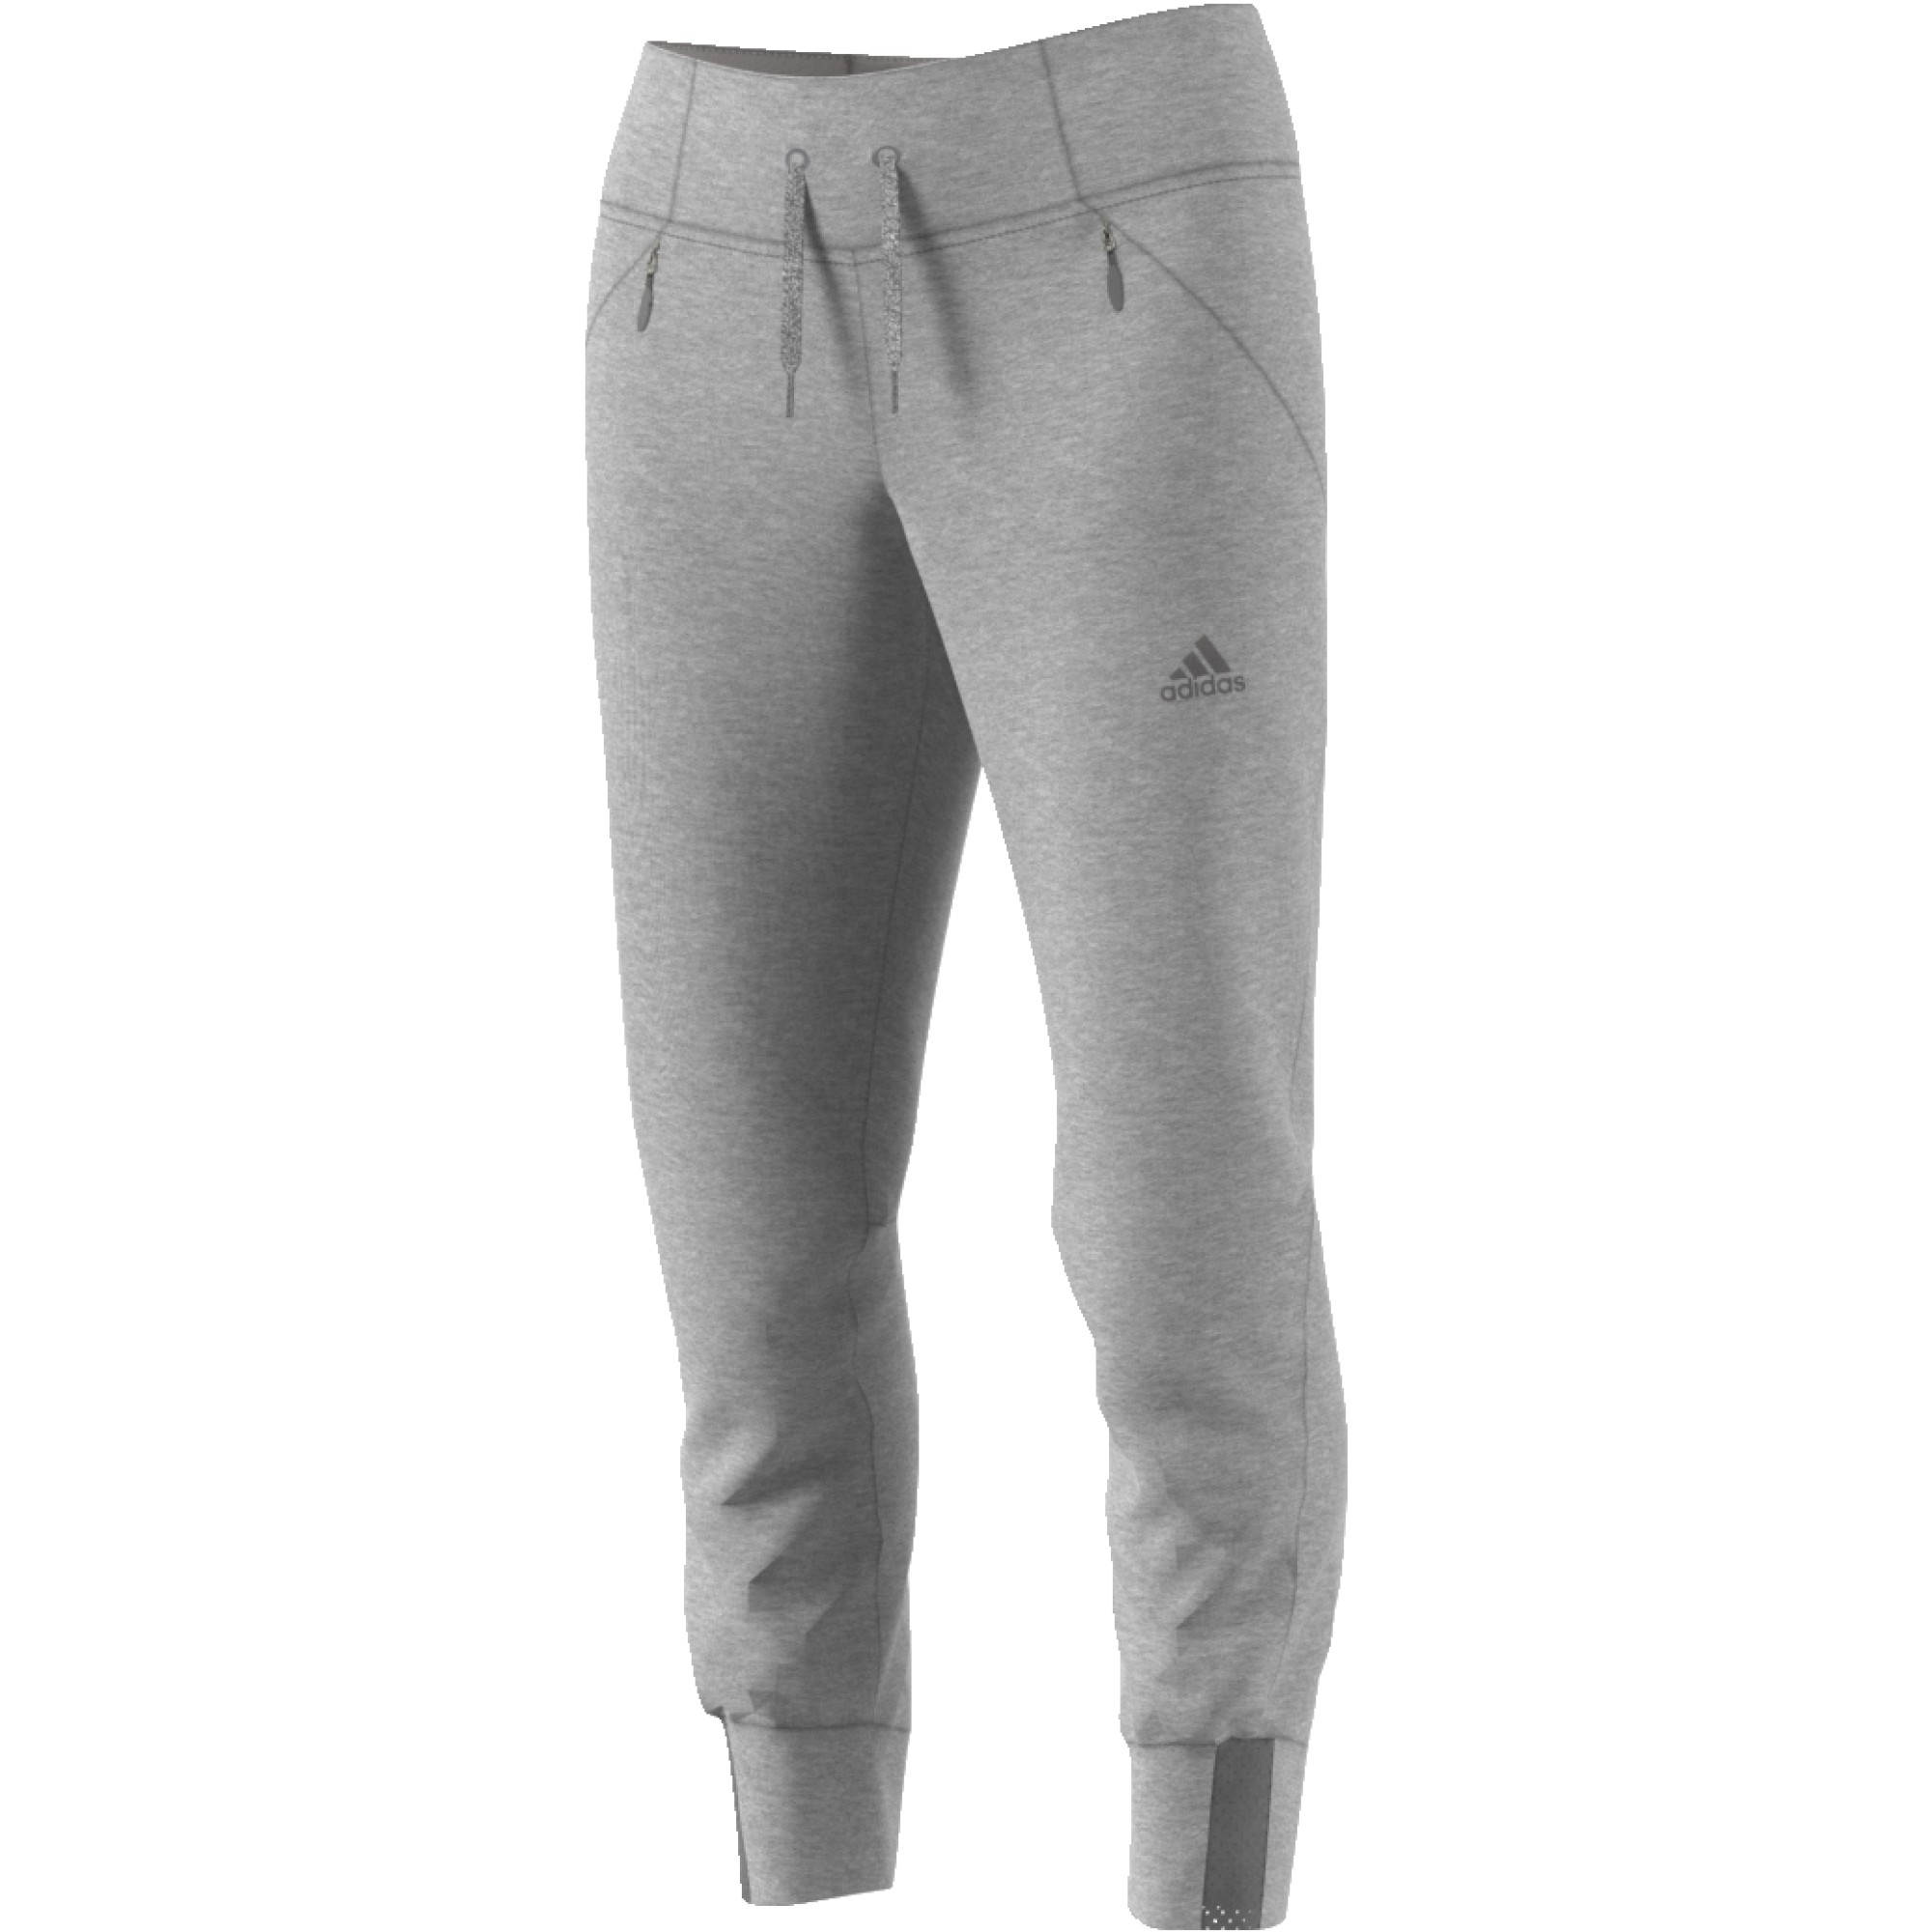 adidas womens running pants